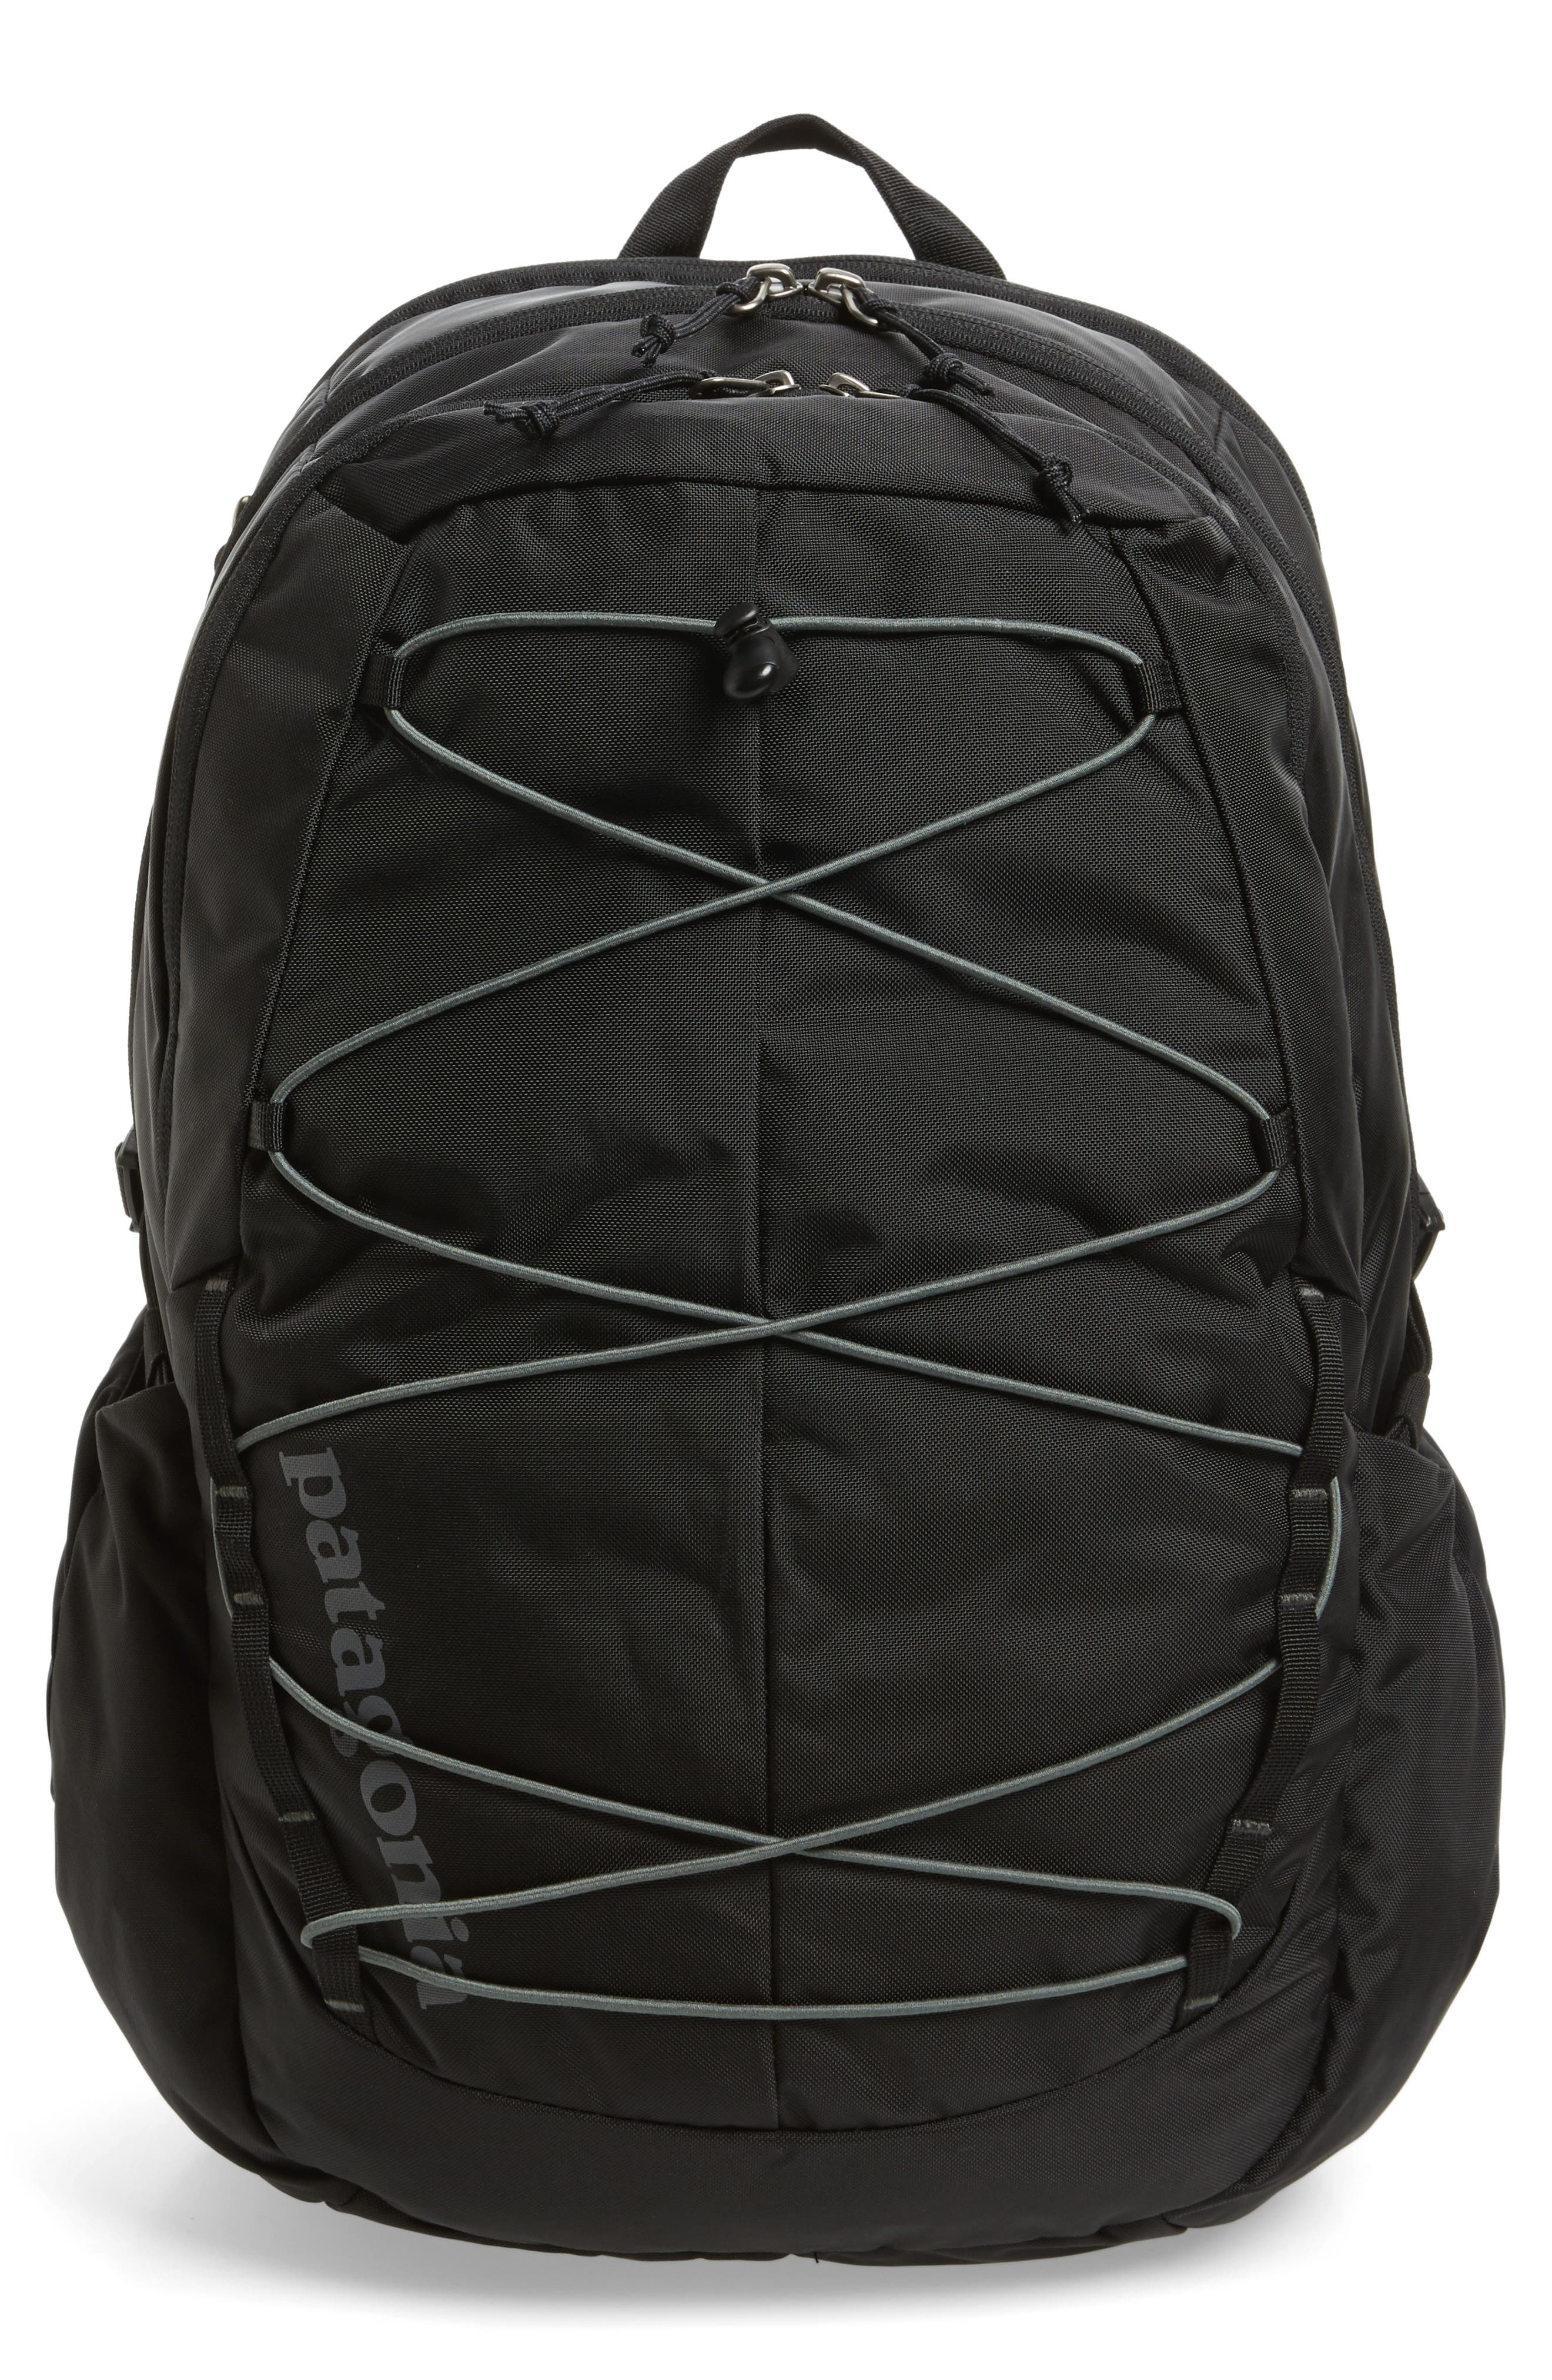 30L Chacabuco Backpack,                         Main,                         color, BLACK